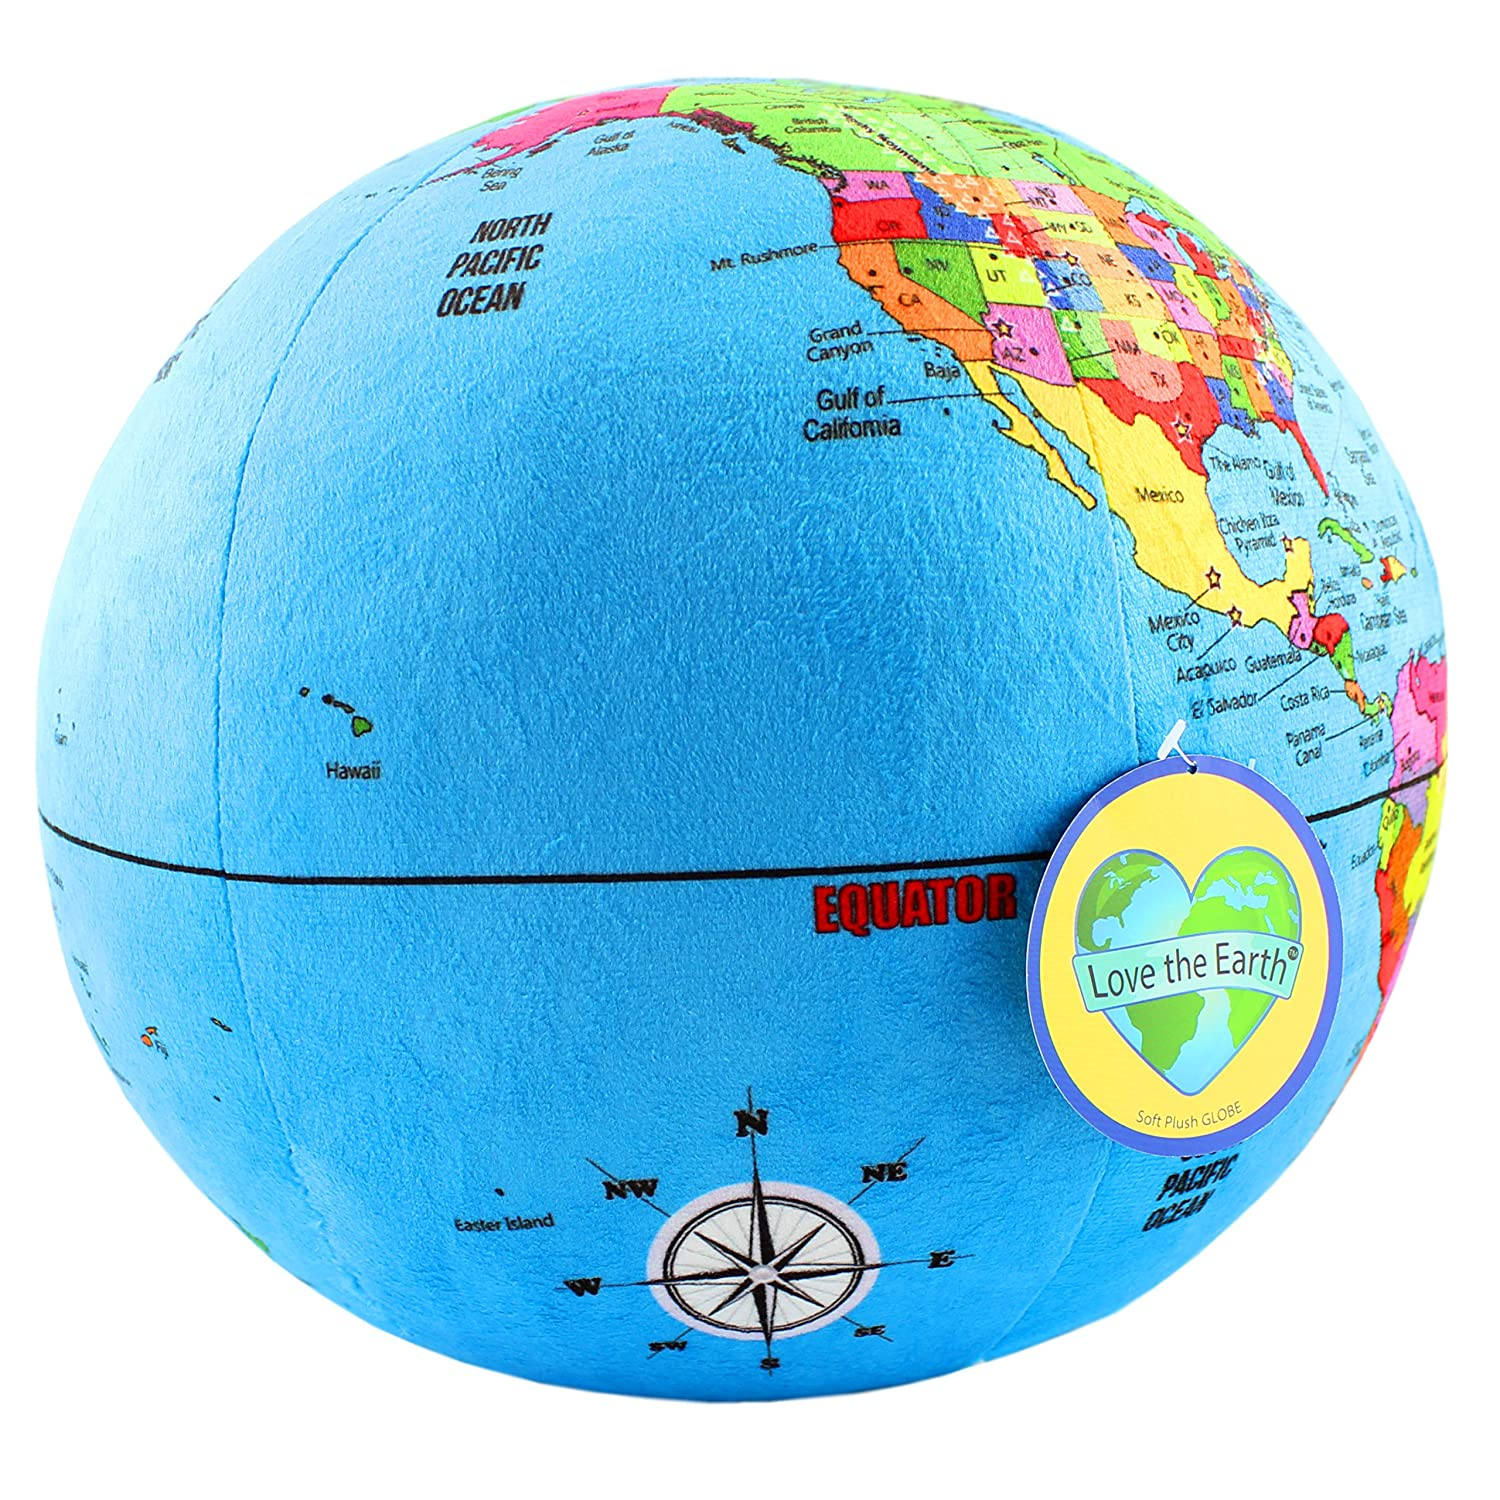 Attatoy Love-The-Earth Plush Planet Globe; 13 Educational World Stuffed Toy with Geo-Political Markings